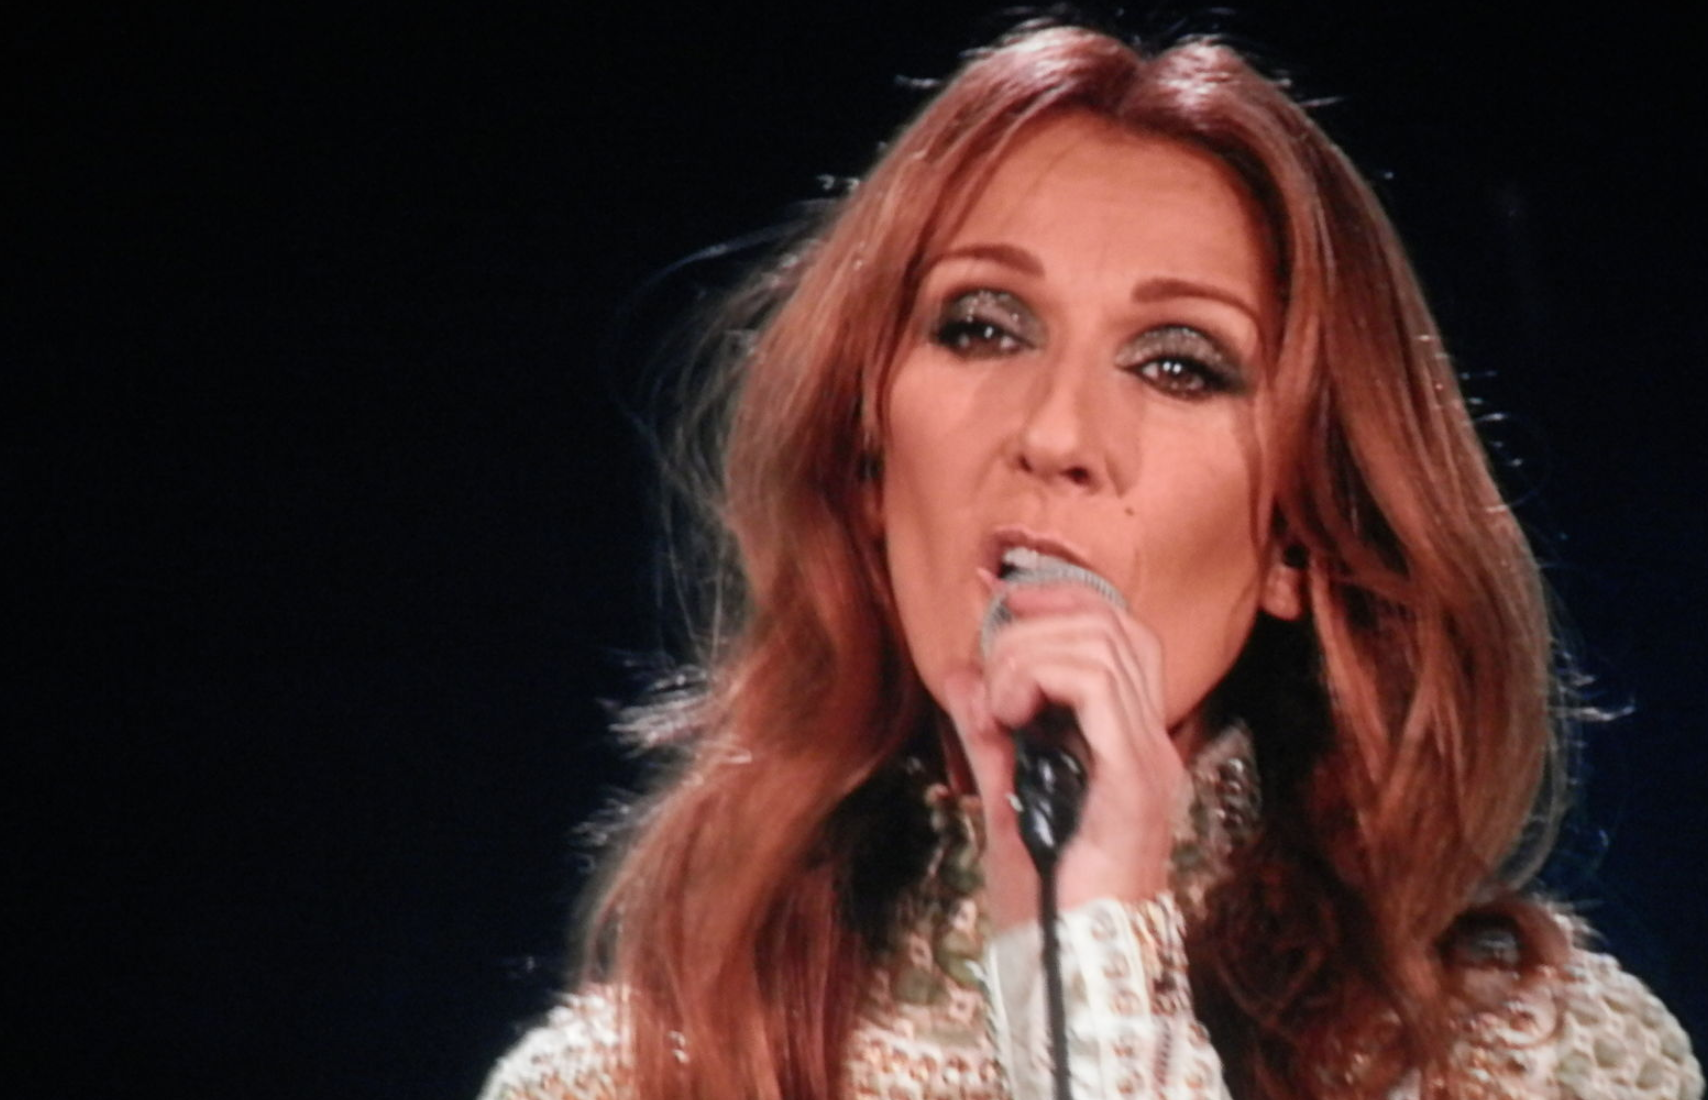 aca7c52b0784 Céline Dion Has a Strange Ad To Launch Her New Gender-Neutral Clothing Line